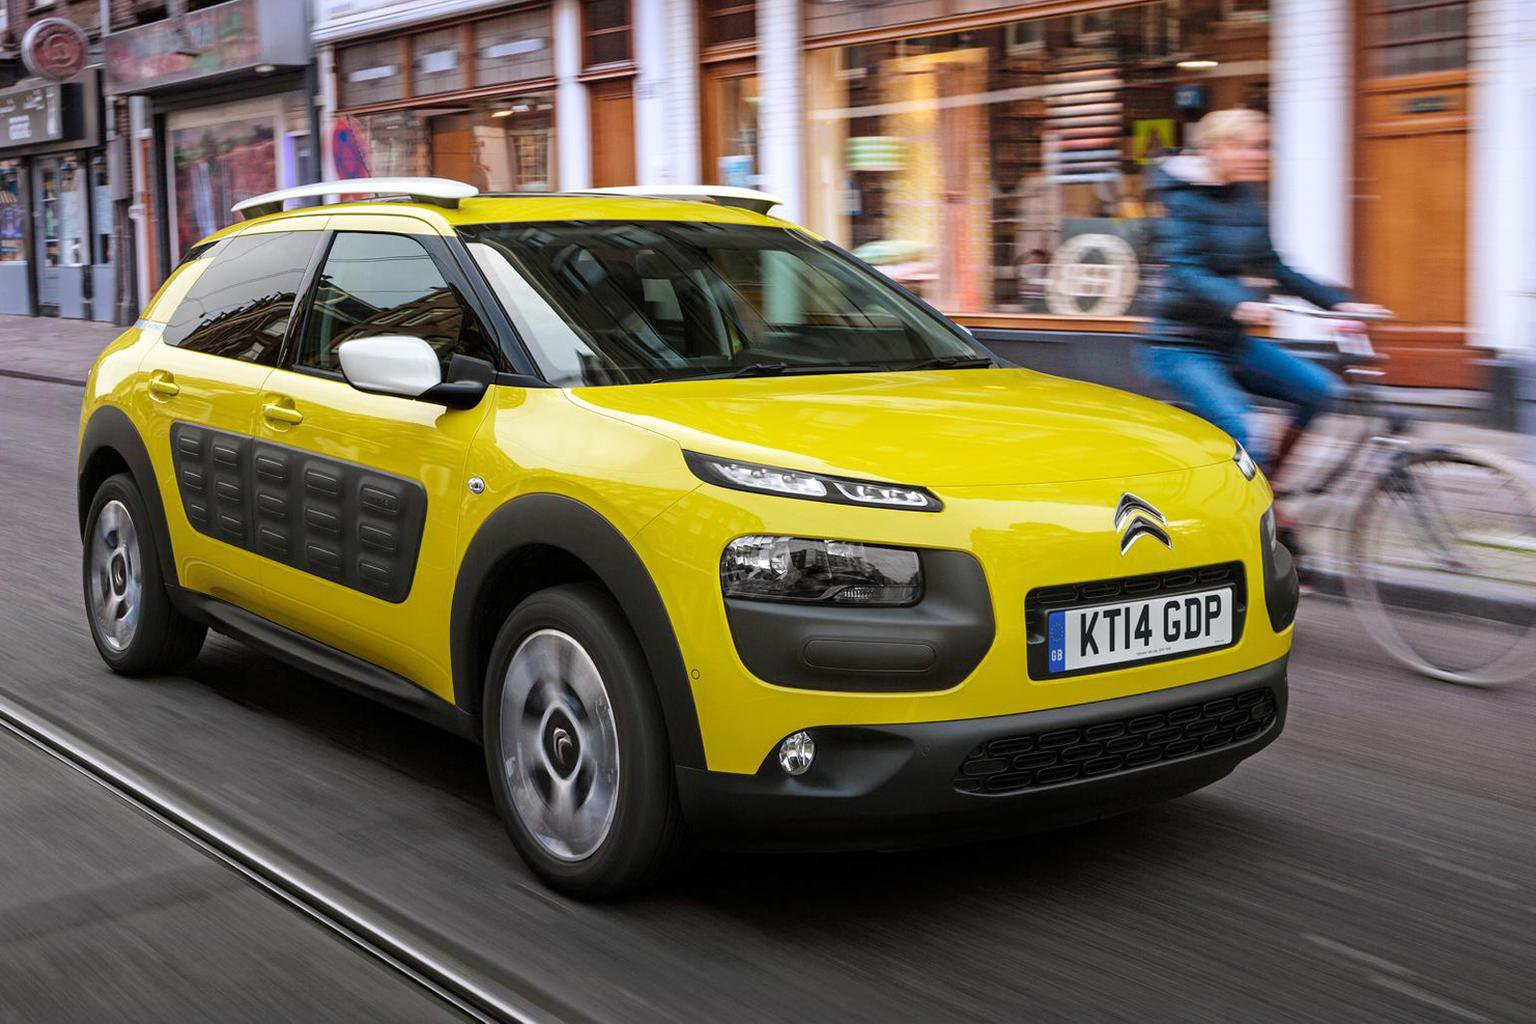 Citroen C4 Cactus prices start at 12,990